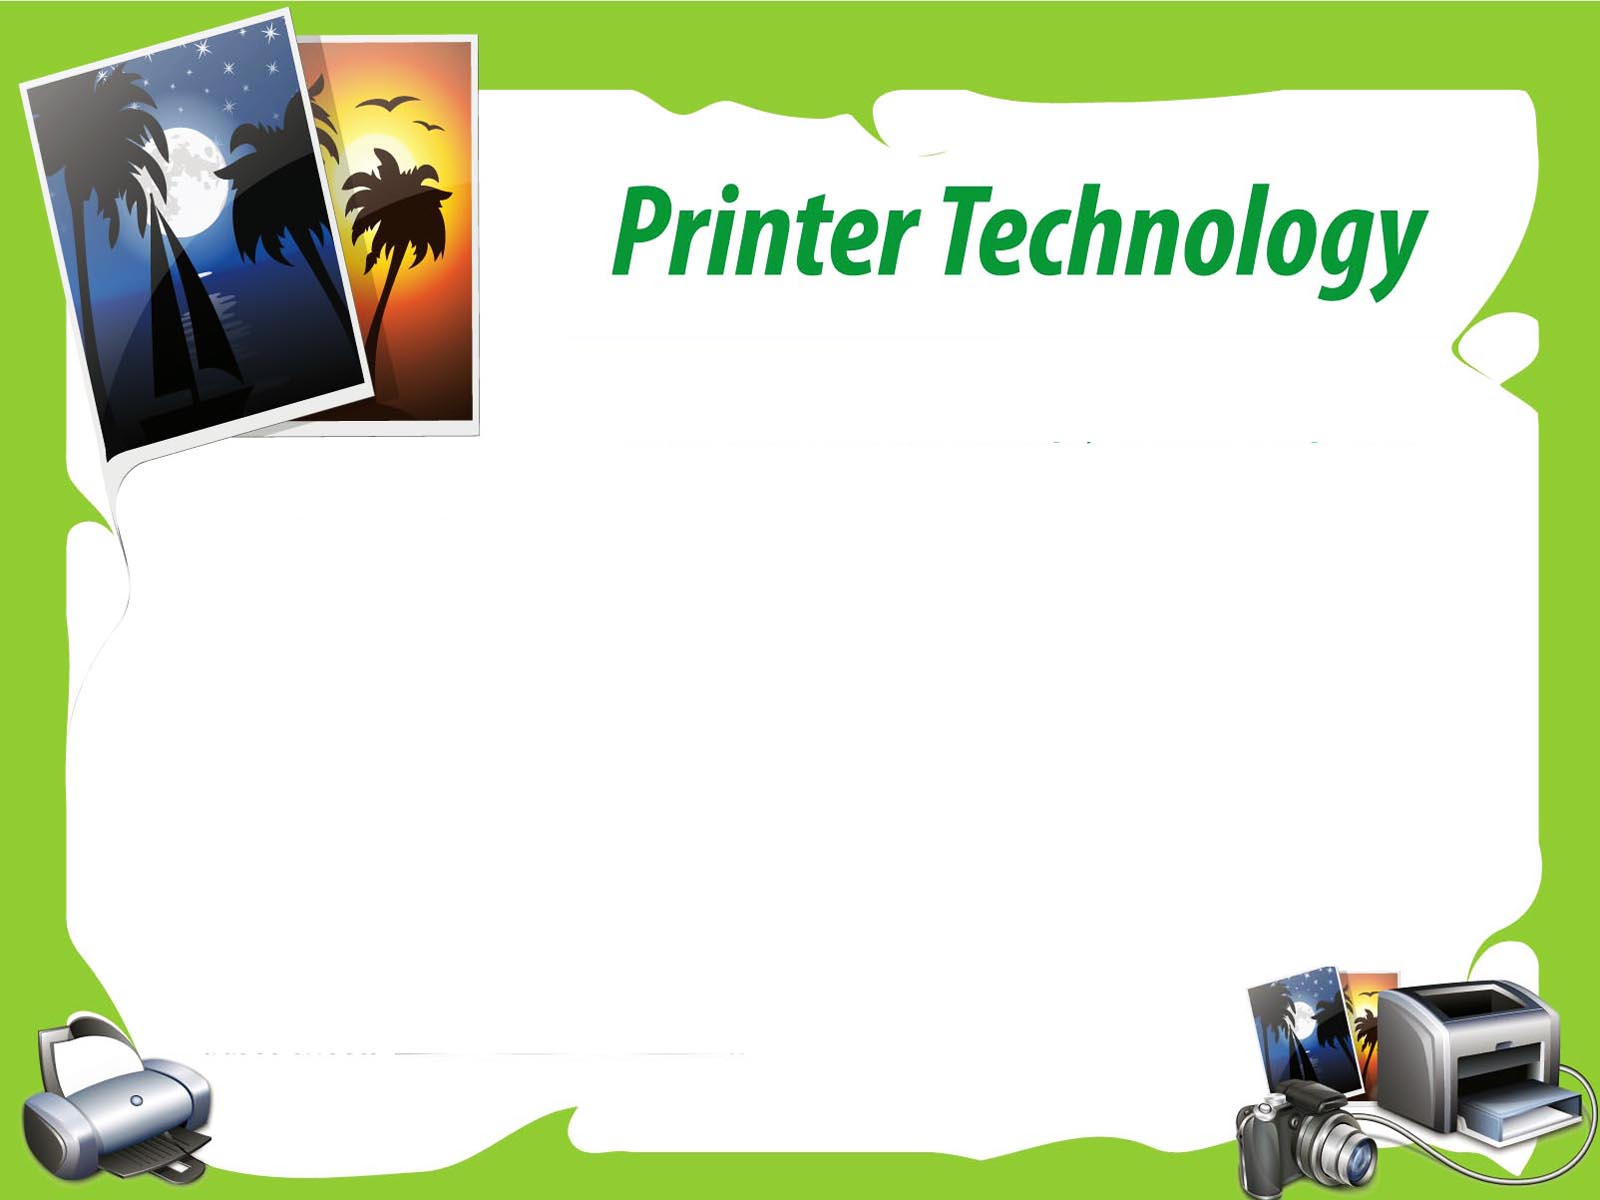 Printer Technology PPT Backgrounds